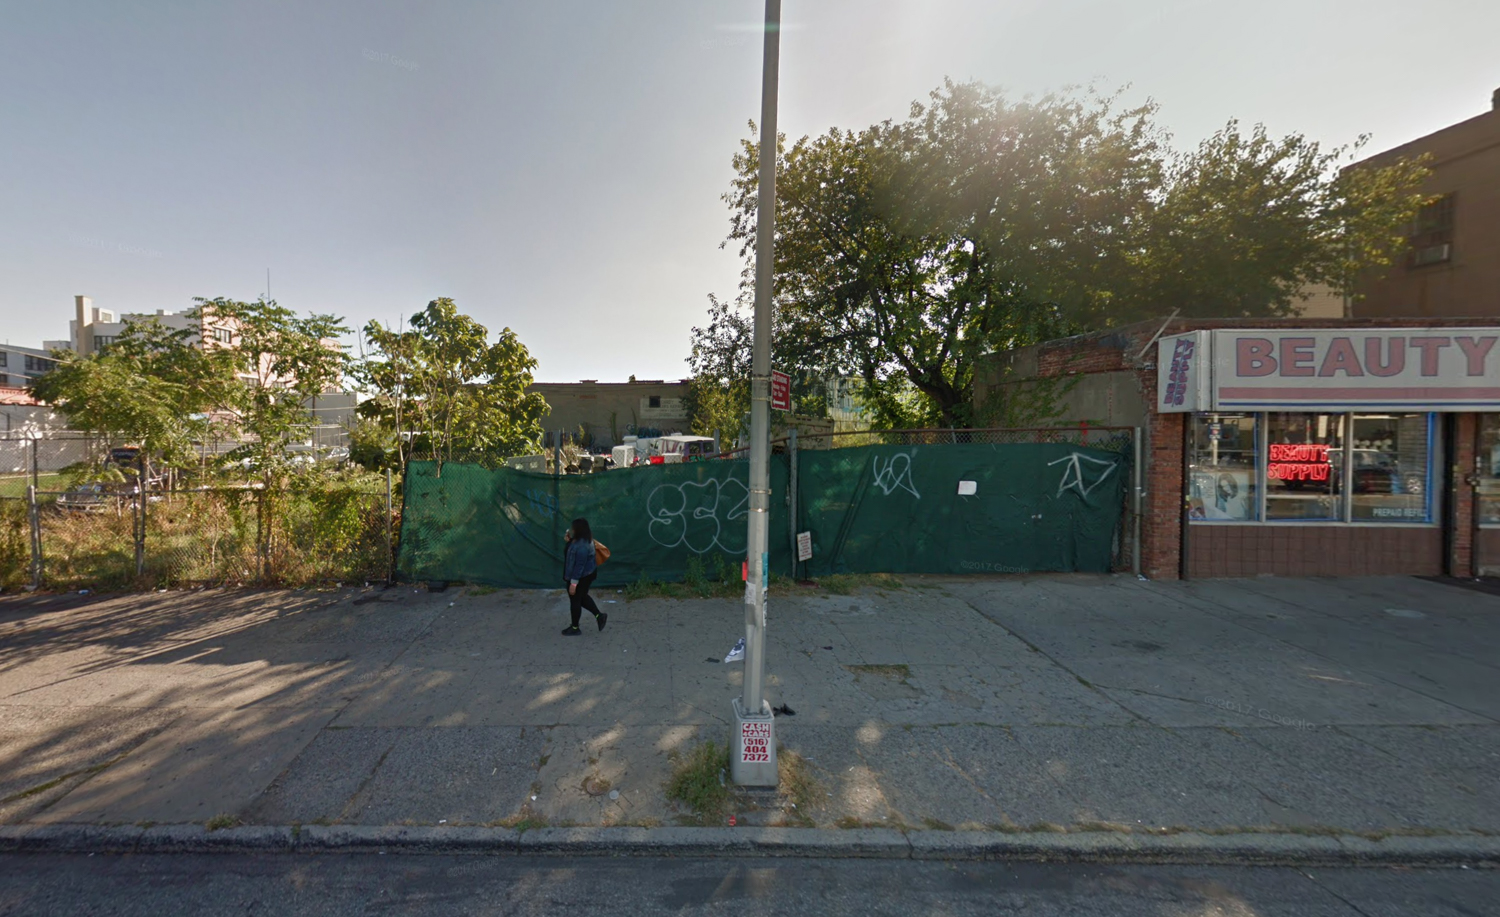 343 Ralph Avenue, via Google Maps